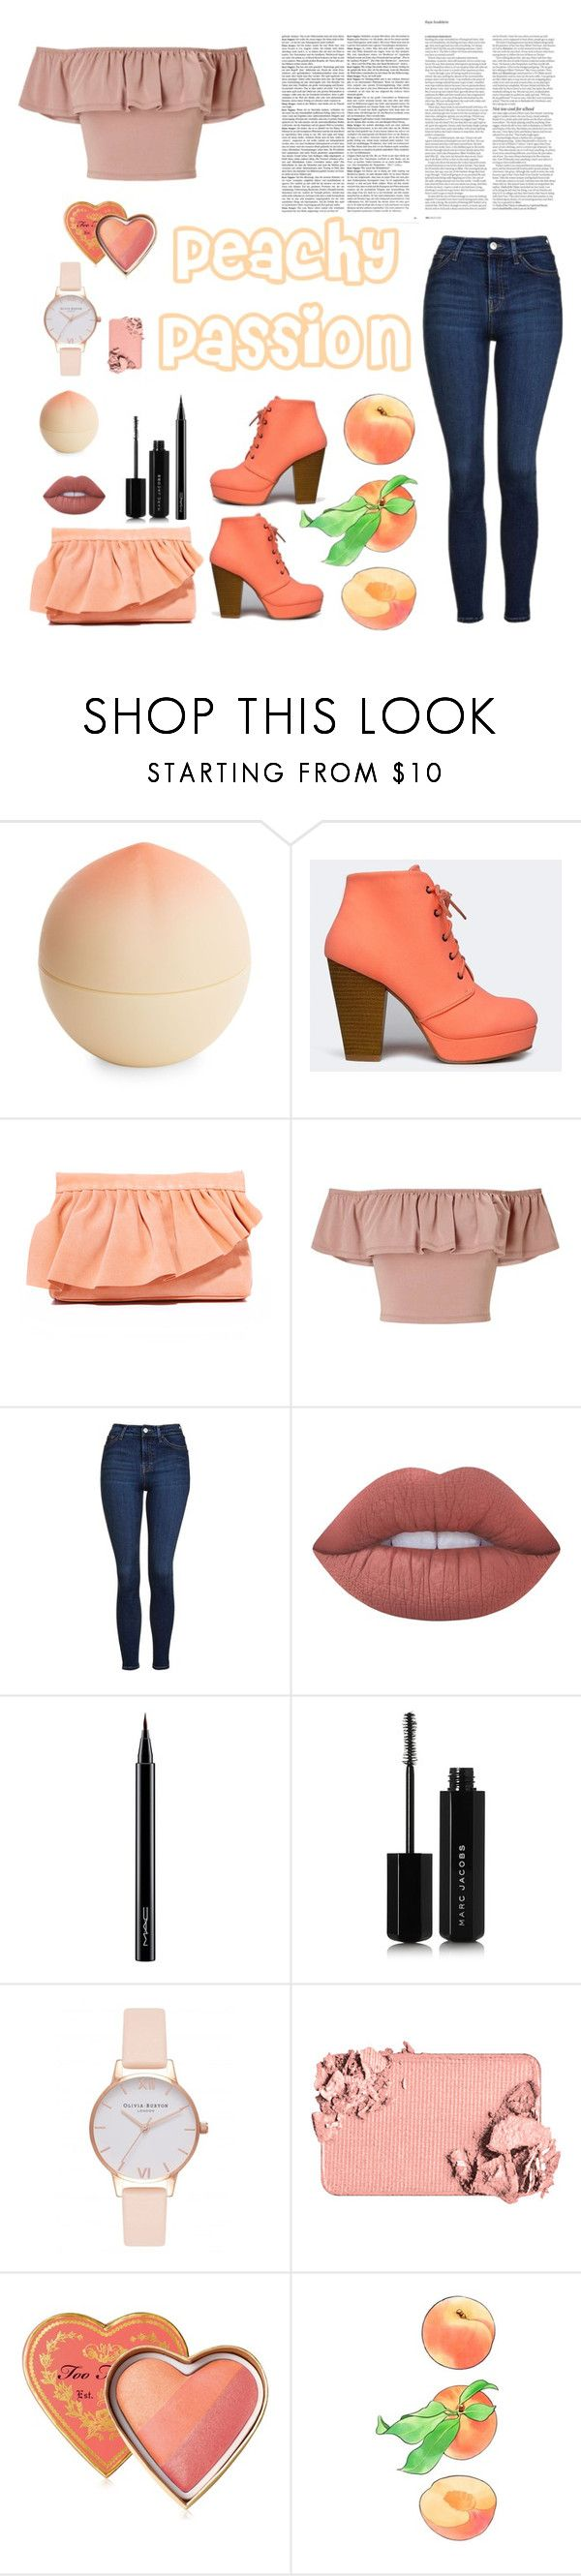 """Peachy Passion"" by lilypads-and-love ❤ liked on Polyvore featuring Tony Moly, Qupid, Marie Turnor, Miss Selfridge, Topshop, Lime Crime, MAC Cosmetics, Marc Jacobs, Olivia Burton and Too Faced Cosmetics"